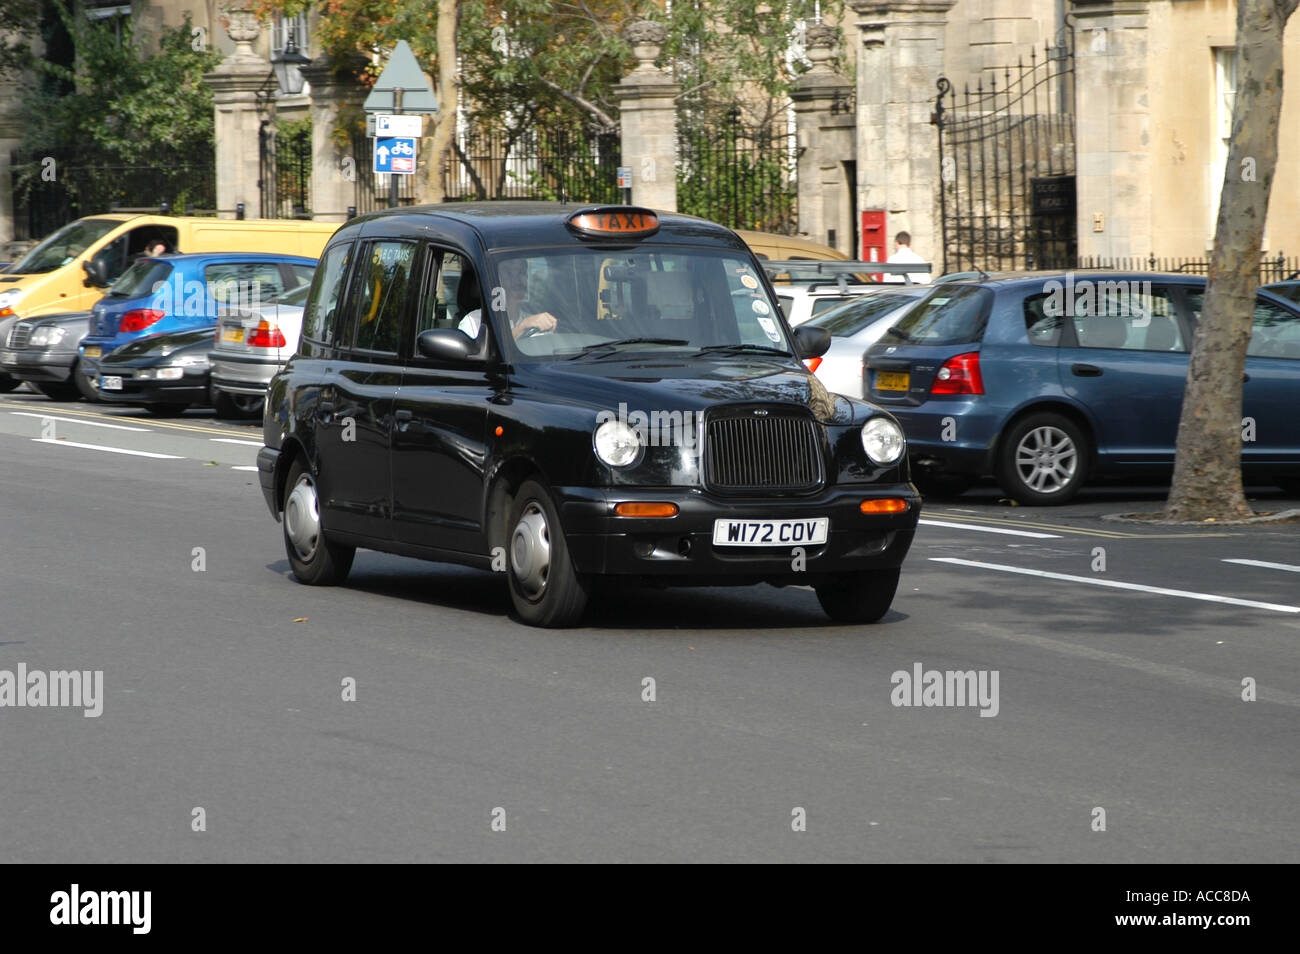 Traditional black taxi hackney cab London vehicle car in St Giles ...